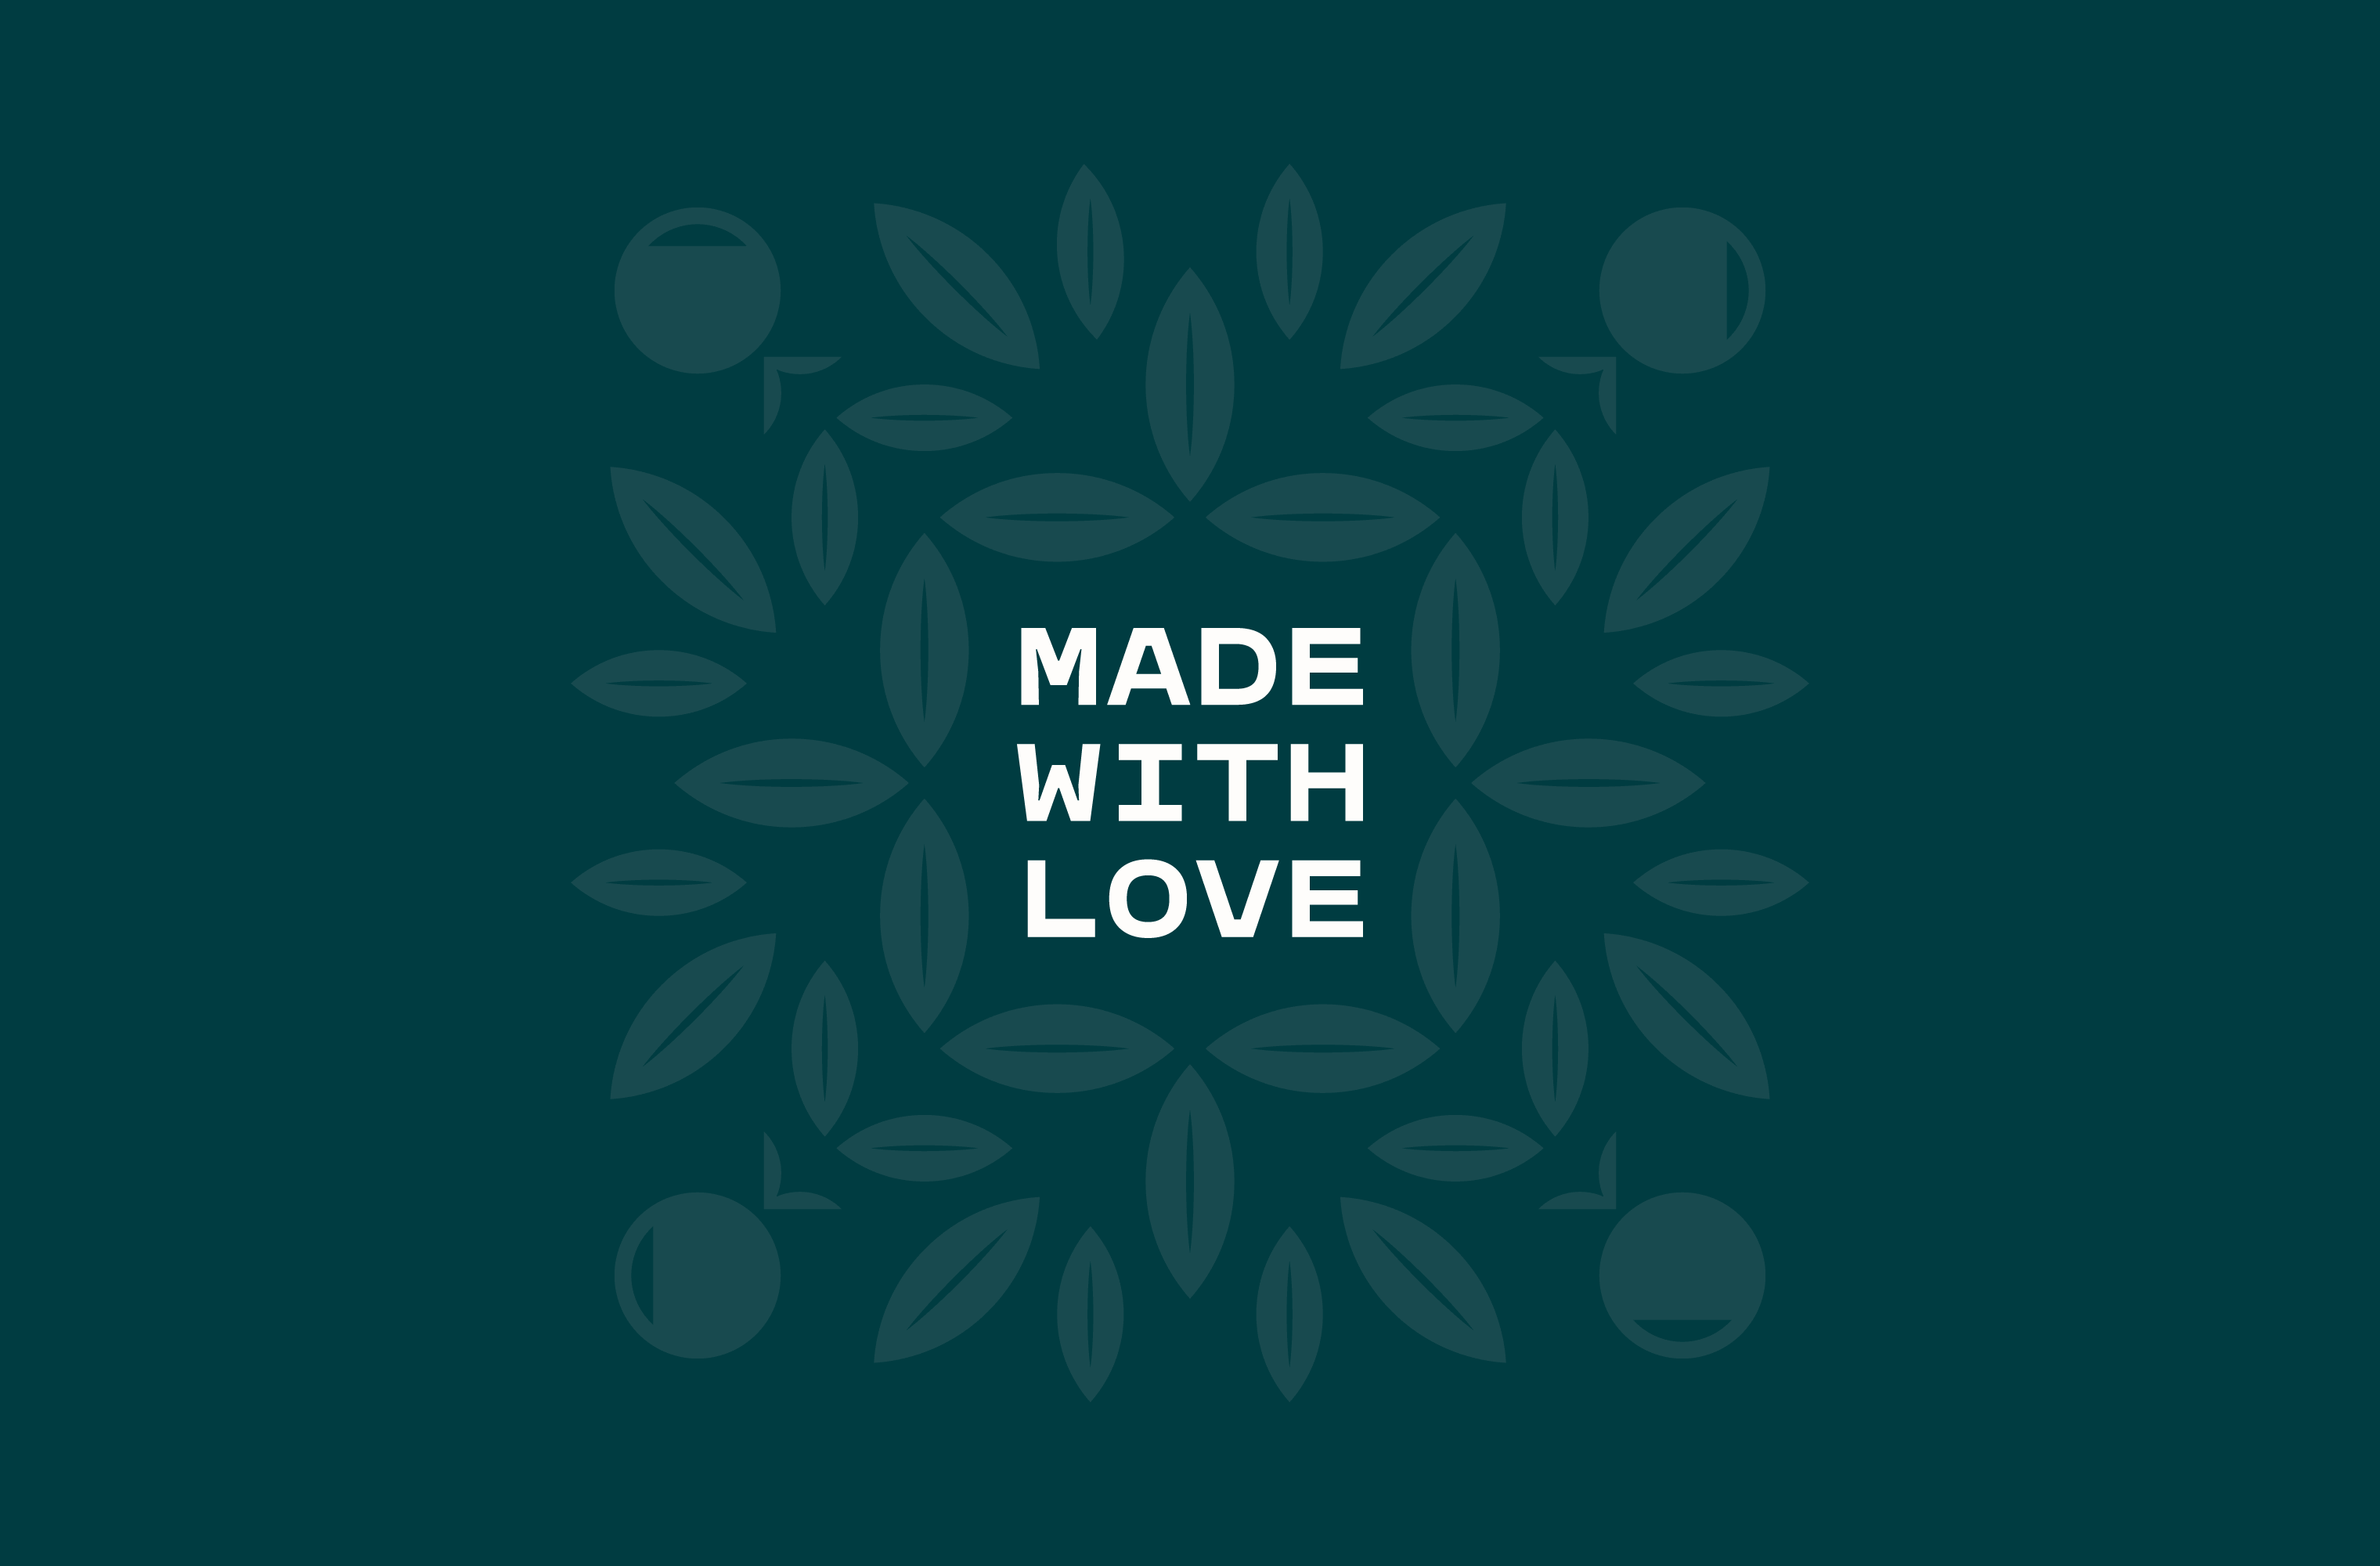 Leafy pattern surrounding white 'Made With Love' text on a teal background